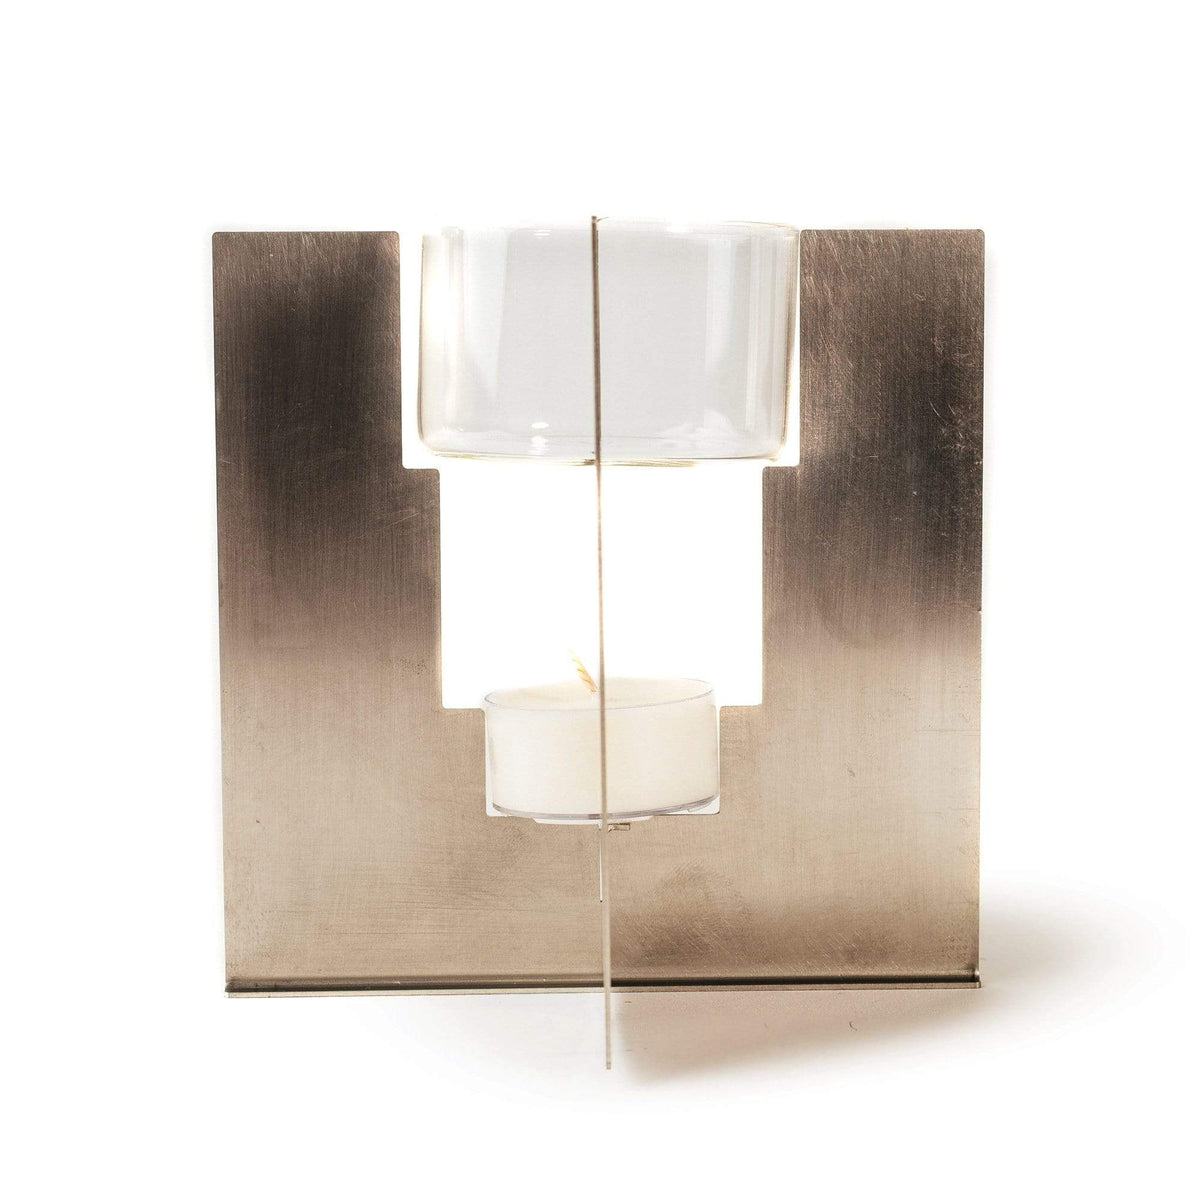 Fragrance Oil Burner - Stainless Steel